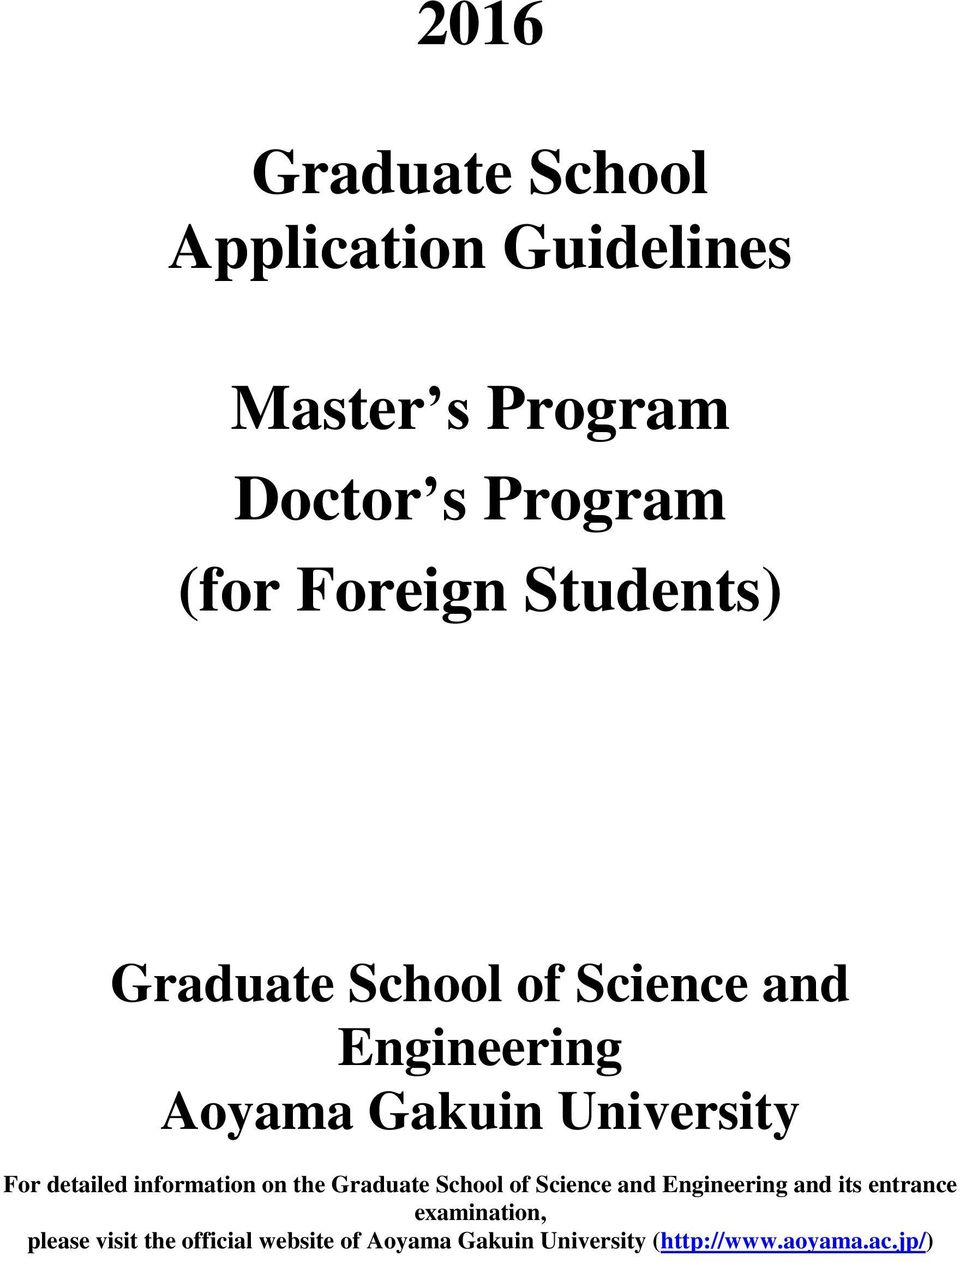 information on the Graduate School of Science and Engineering and its entrance